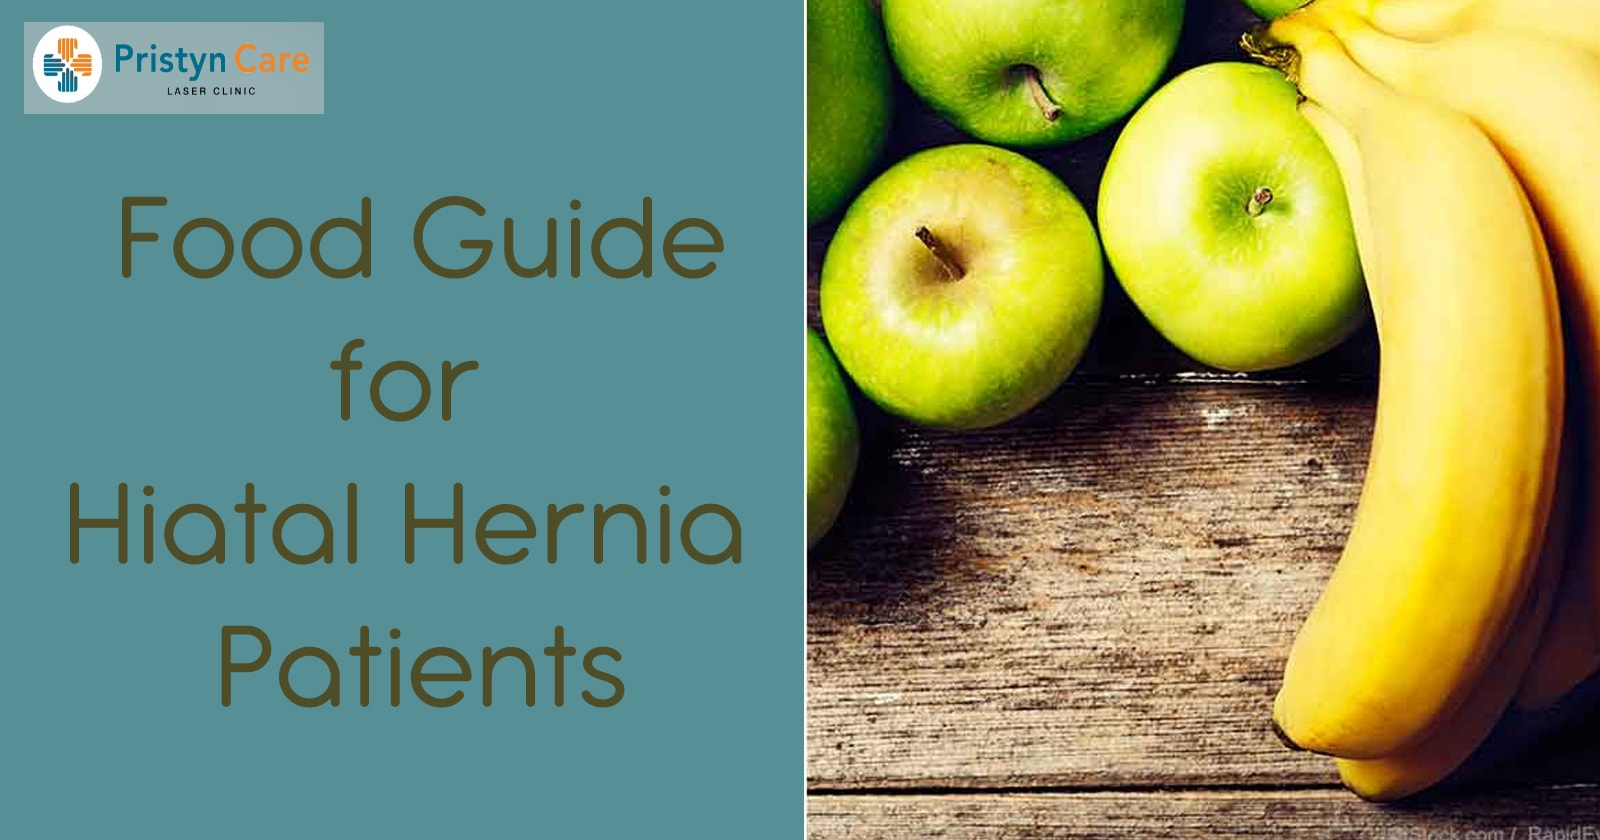 Food Guide for Hiatal Hernia Patients